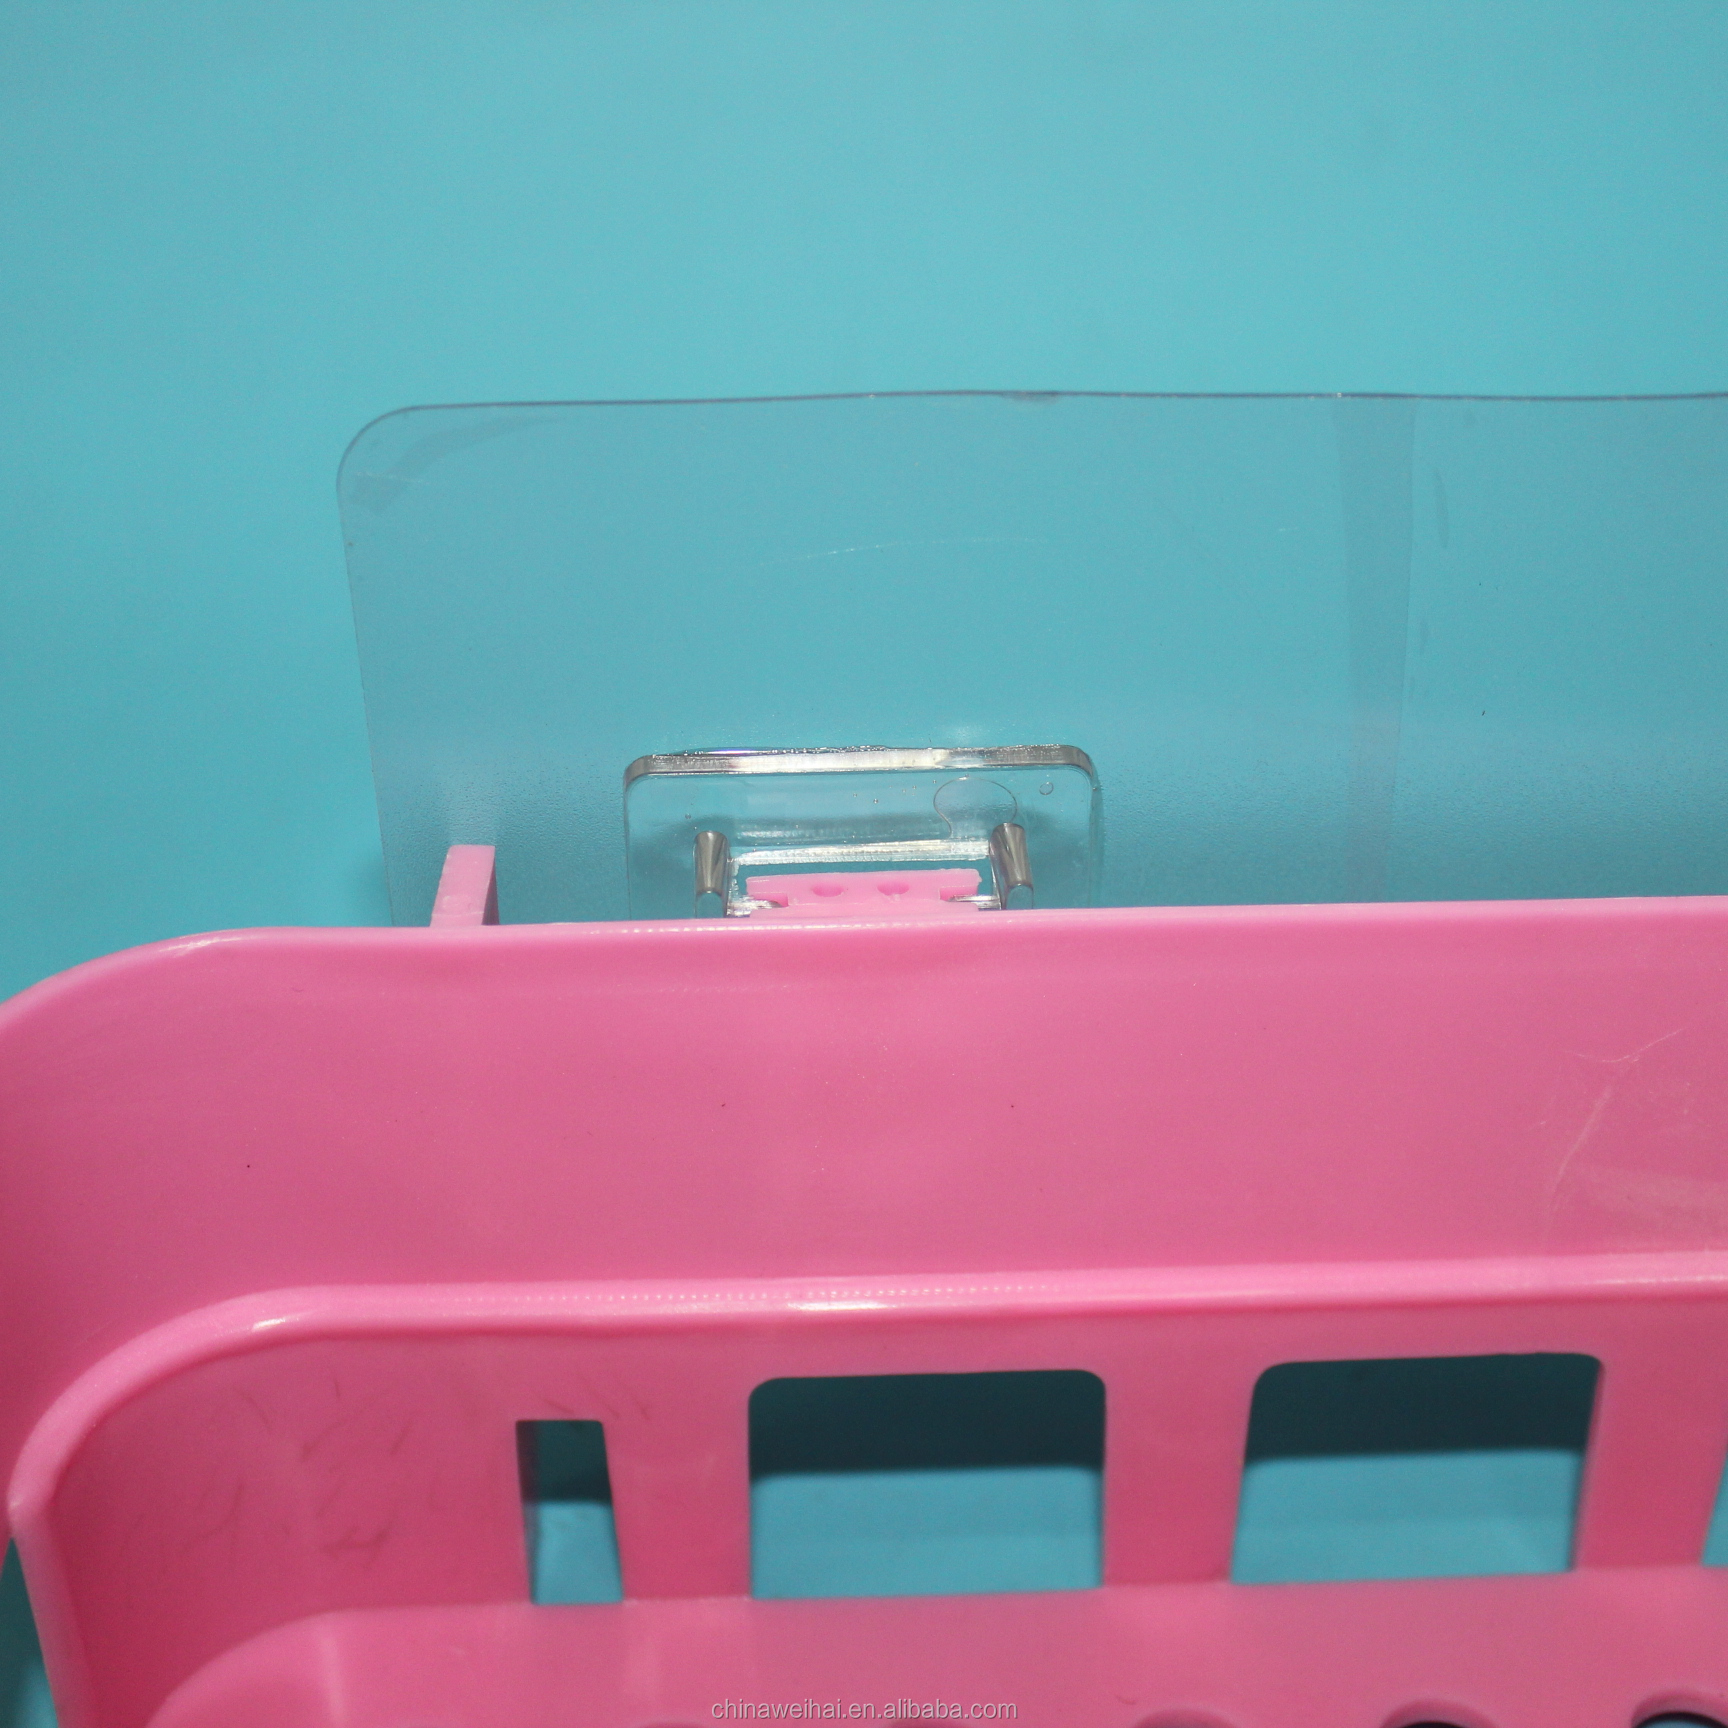 Nail-free bathroom racks toiletries storage racks bathroom toilet shelf